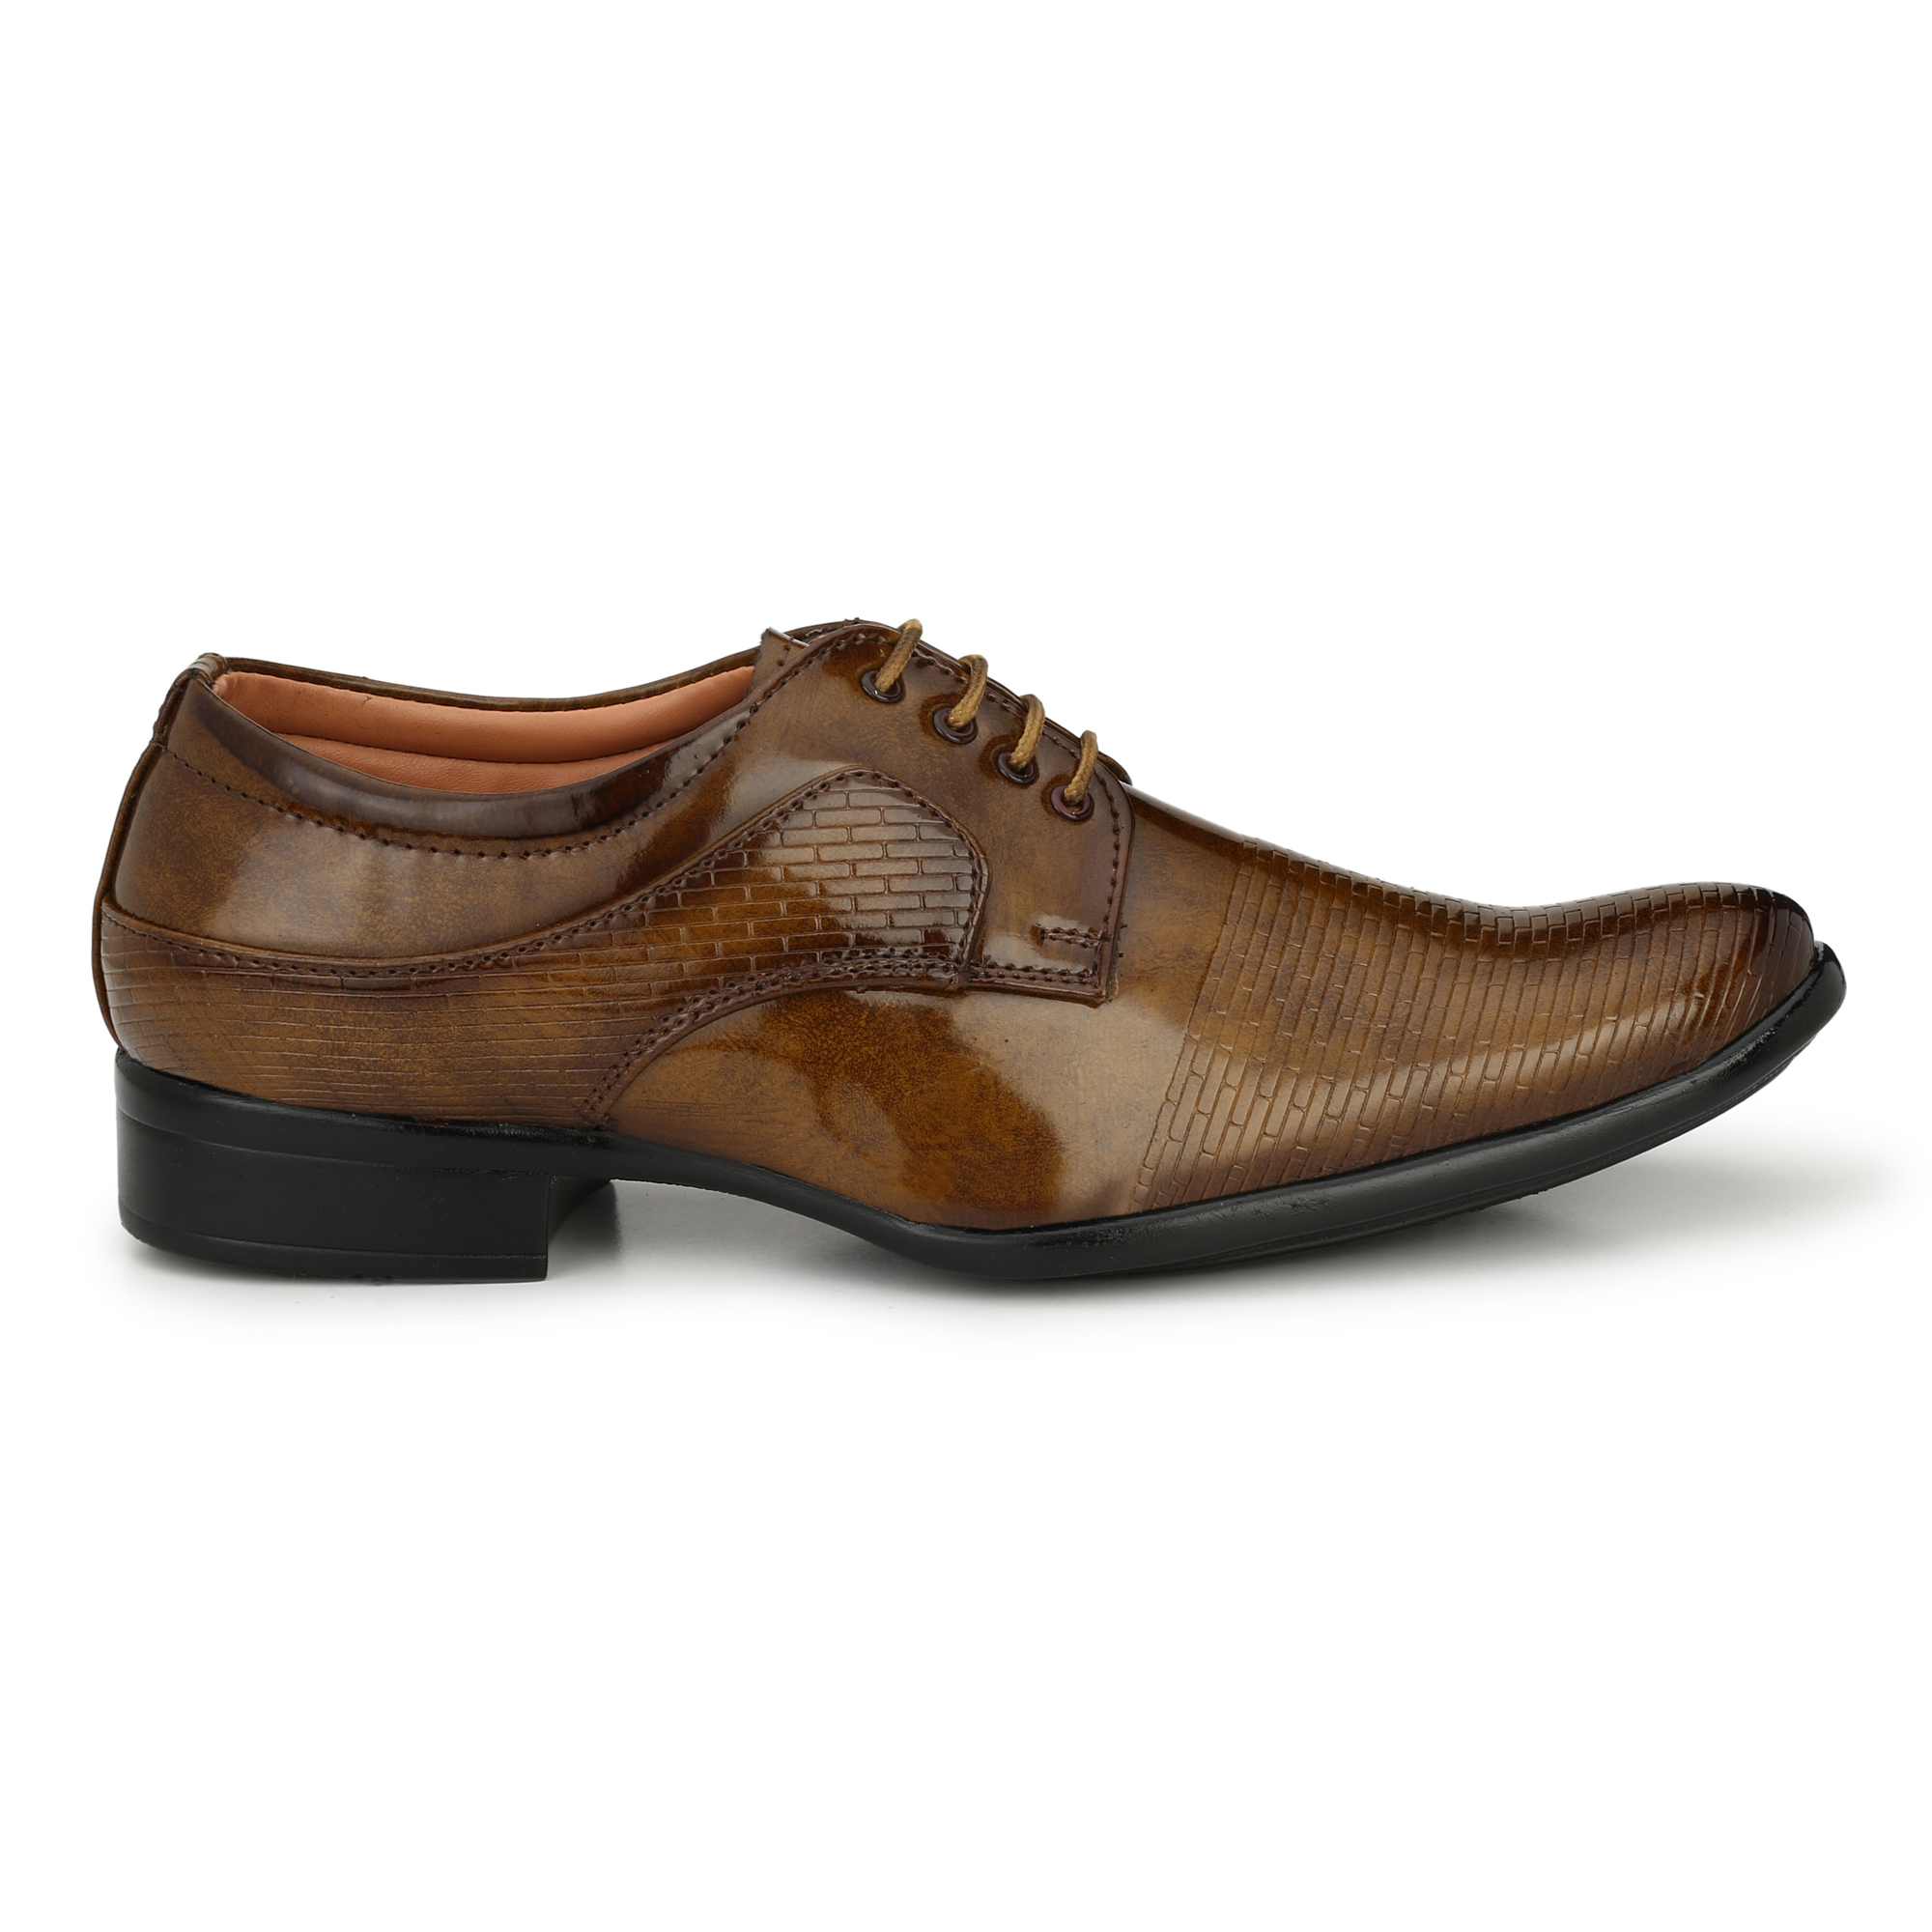 Dazzer 549 Lace Up Patent Formal Shoes For Men 549Tan (Tan, 6-10, 8 PAIR)